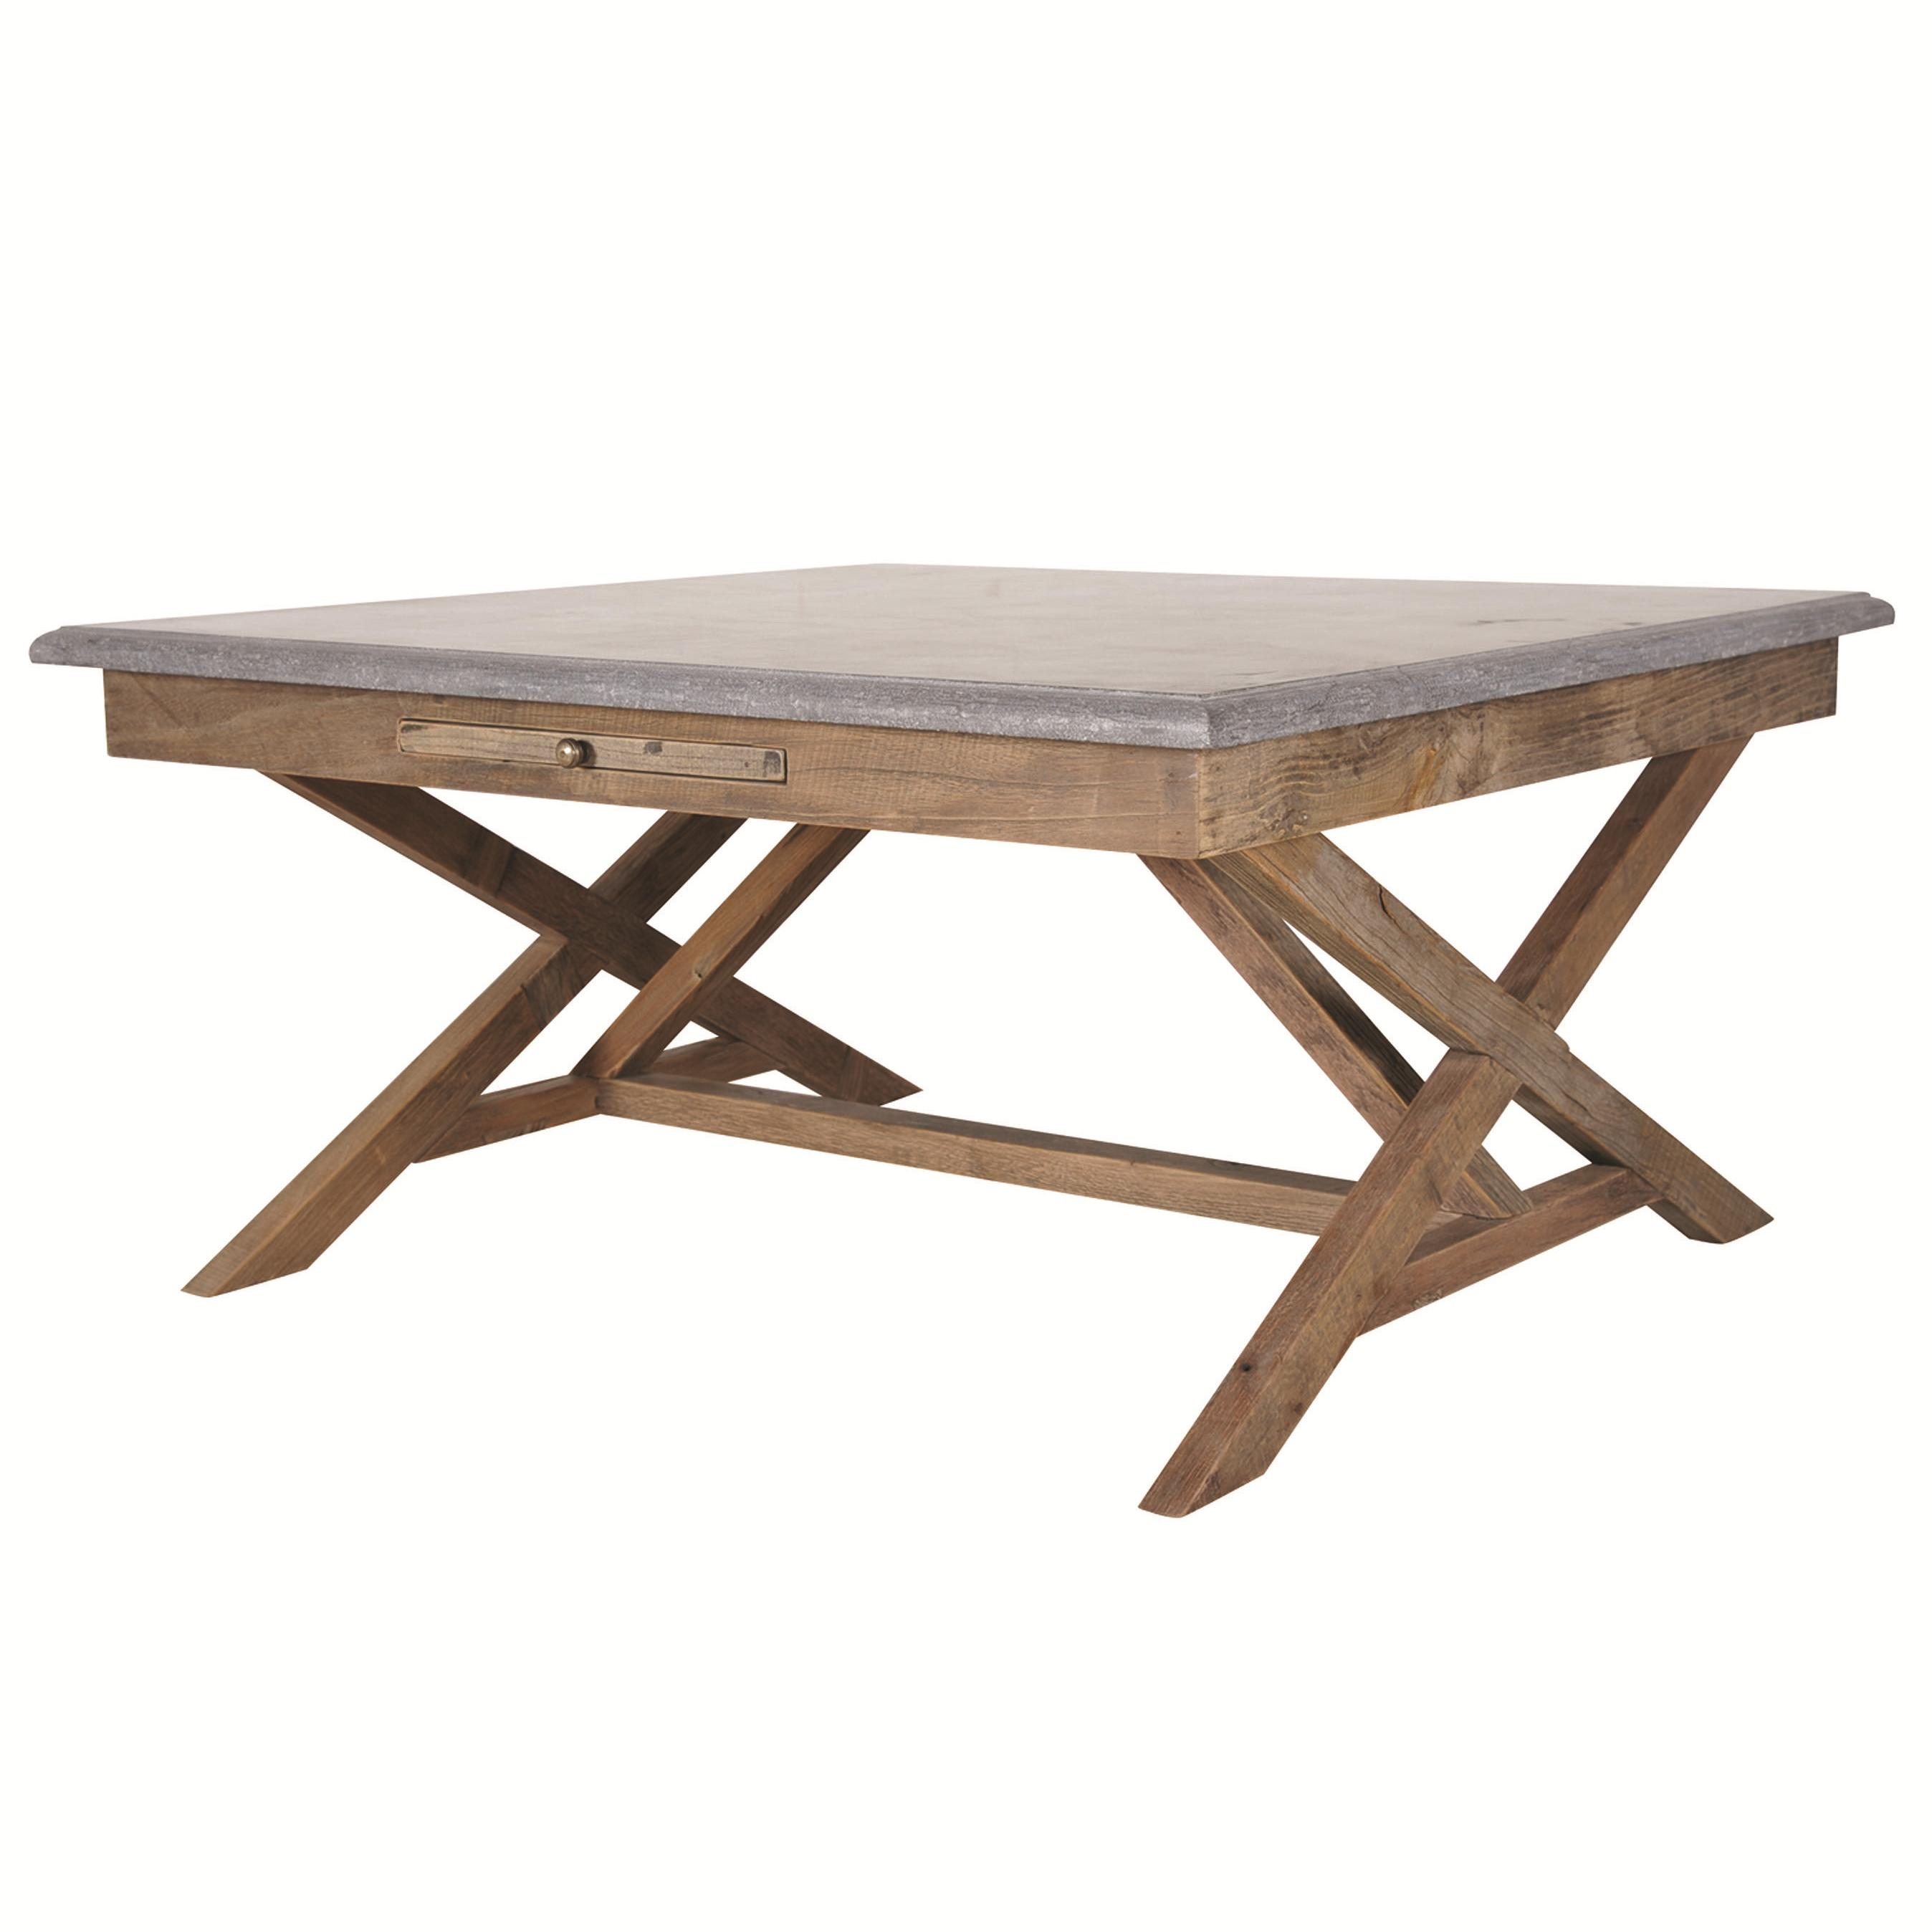 Coffee Table With Bluestone Top: Four Hands Hughes Palma 35 Inch Bluestone Bunching Table